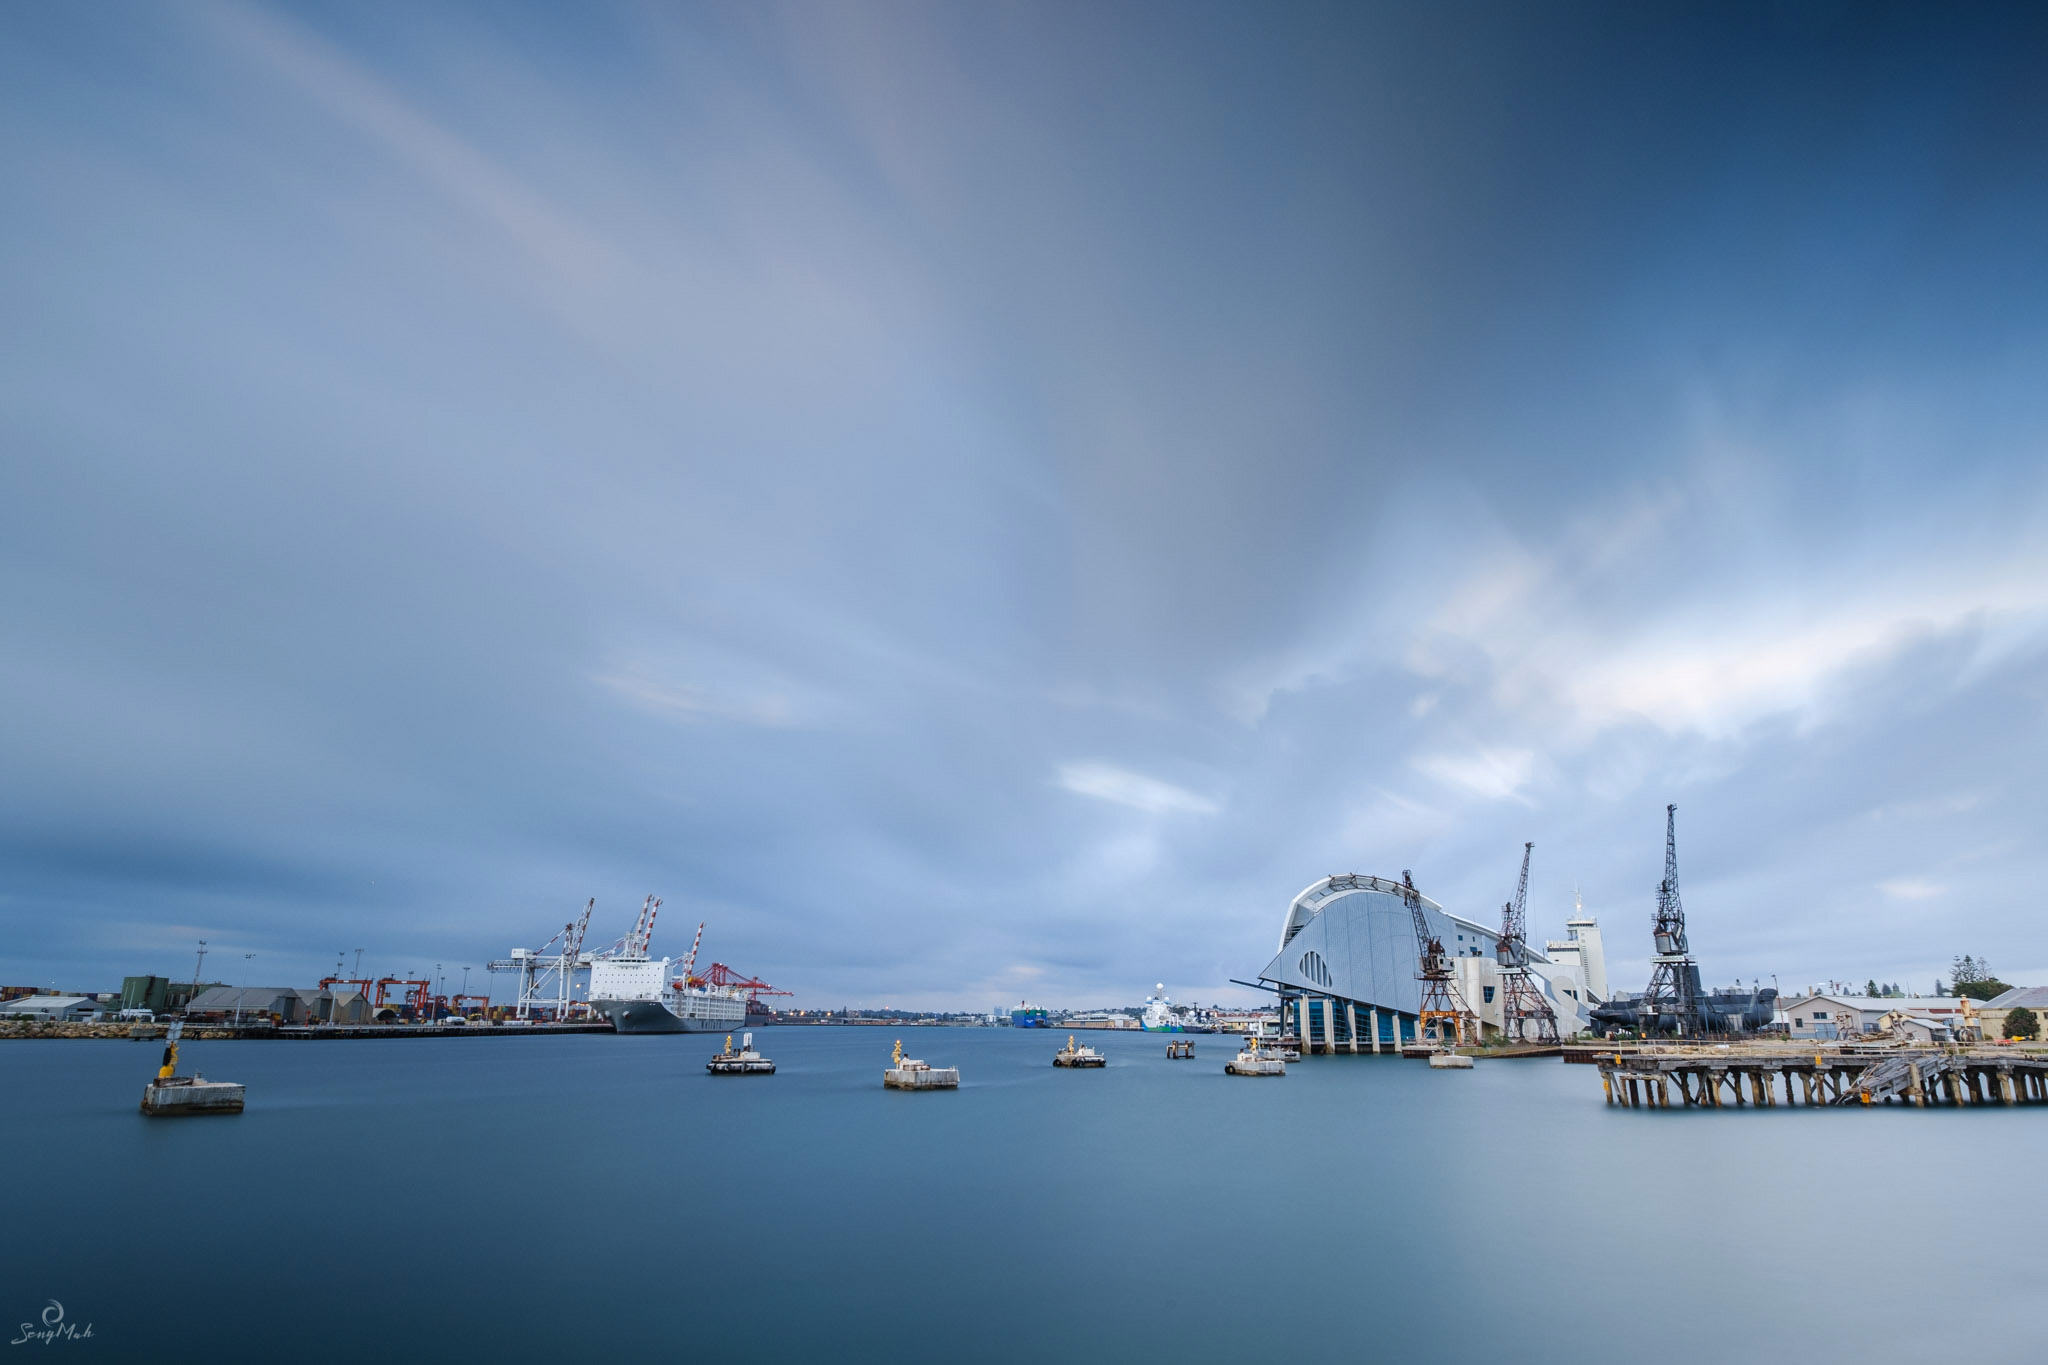 Fremantle Harbour in long exposure